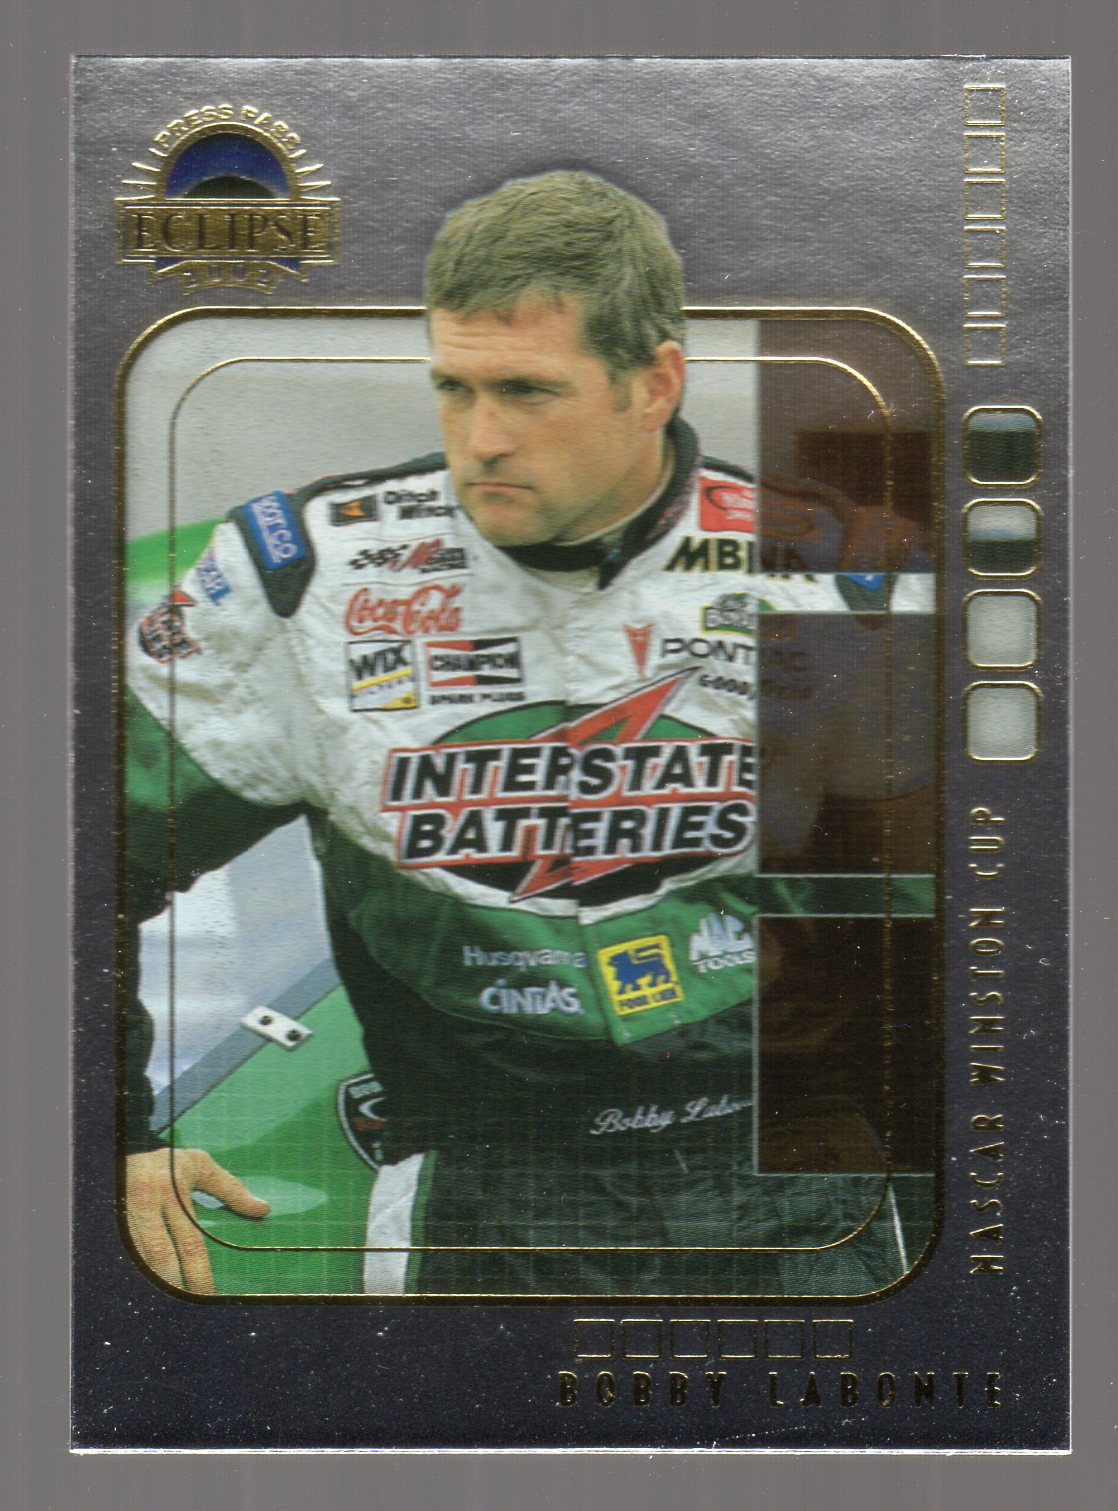 2002 Press Pass Eclipse Solar Eclipse #S6 Bobby Labonte